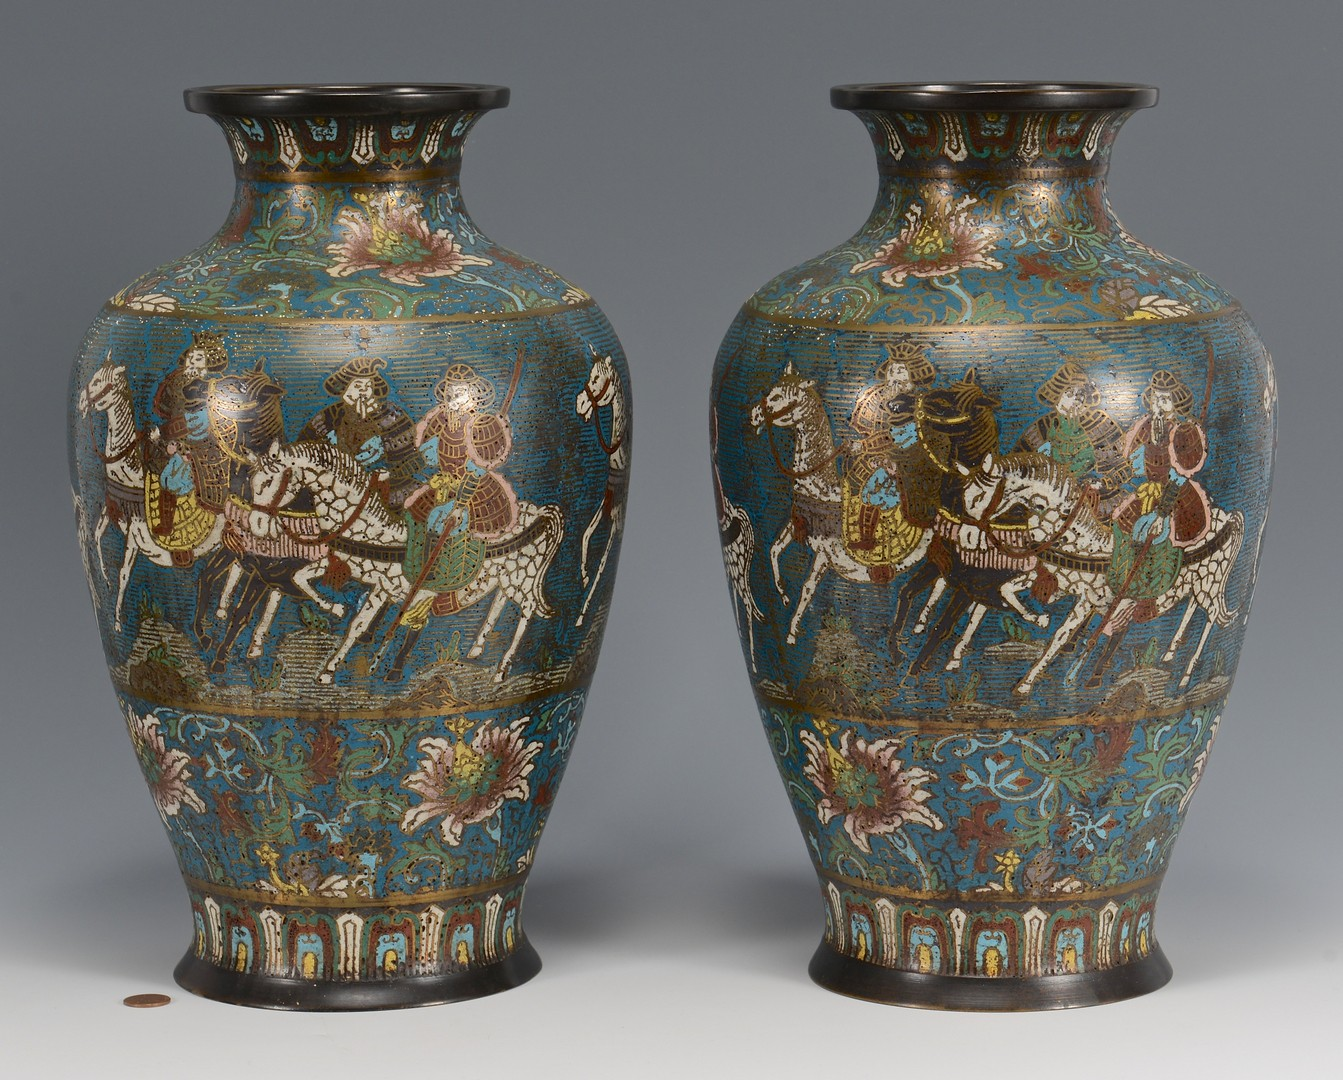 Lot 4010209: Pair of Champleve Vases